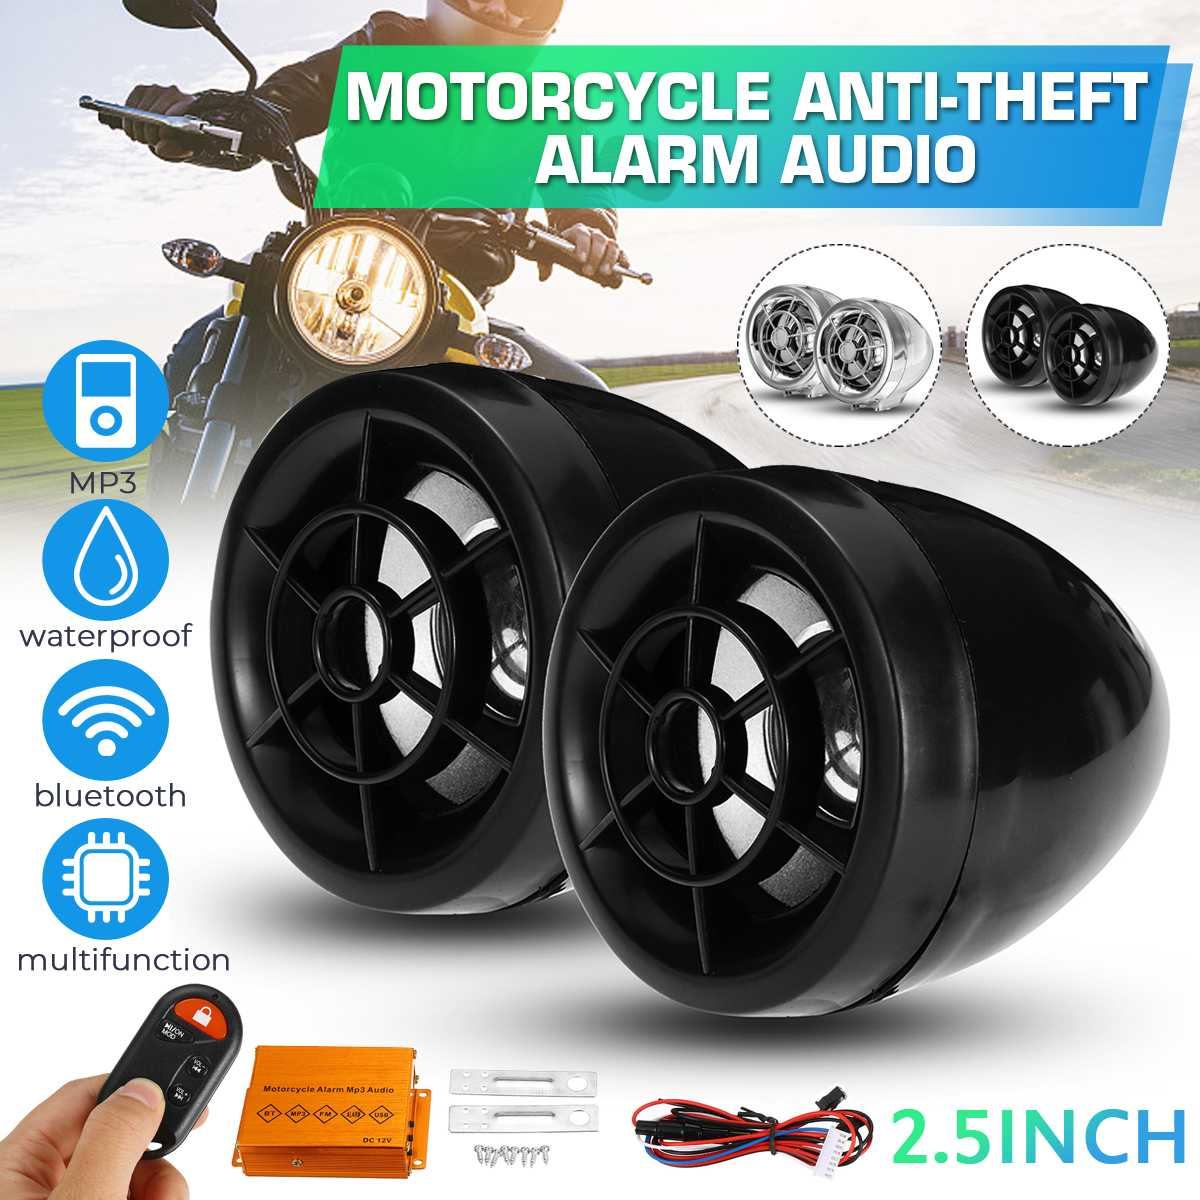 Motorcycle Bluetooth Audio Waterproof Anti-theft Alarm System Speaker FM Radio MP3 Player Music Amplifier With Remote Control